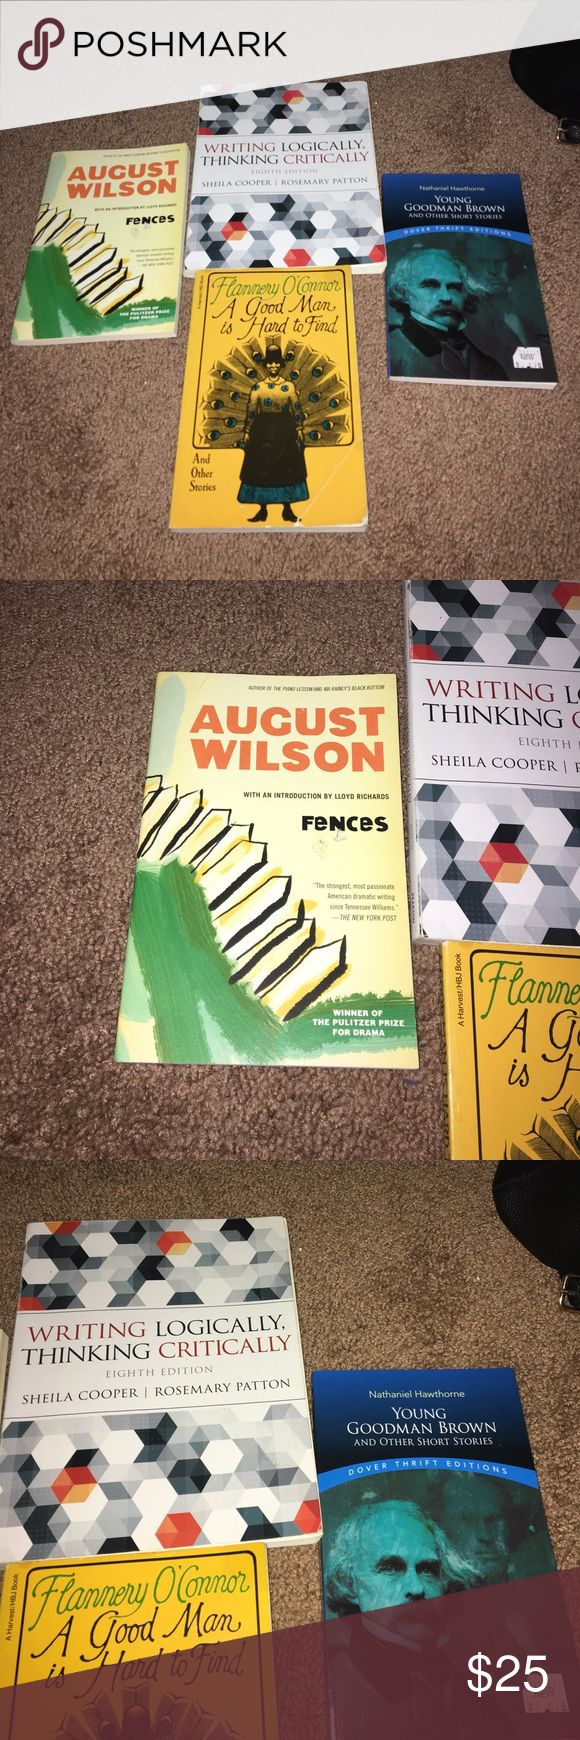 """English books Writing logically thinking critically 8th edition// August Wilson """"Fences"""" // """"A good man is hard to find"""" // """"Young a goodman brown""""// they are in good conditions// if you just want one then I will give you a different price Other"""